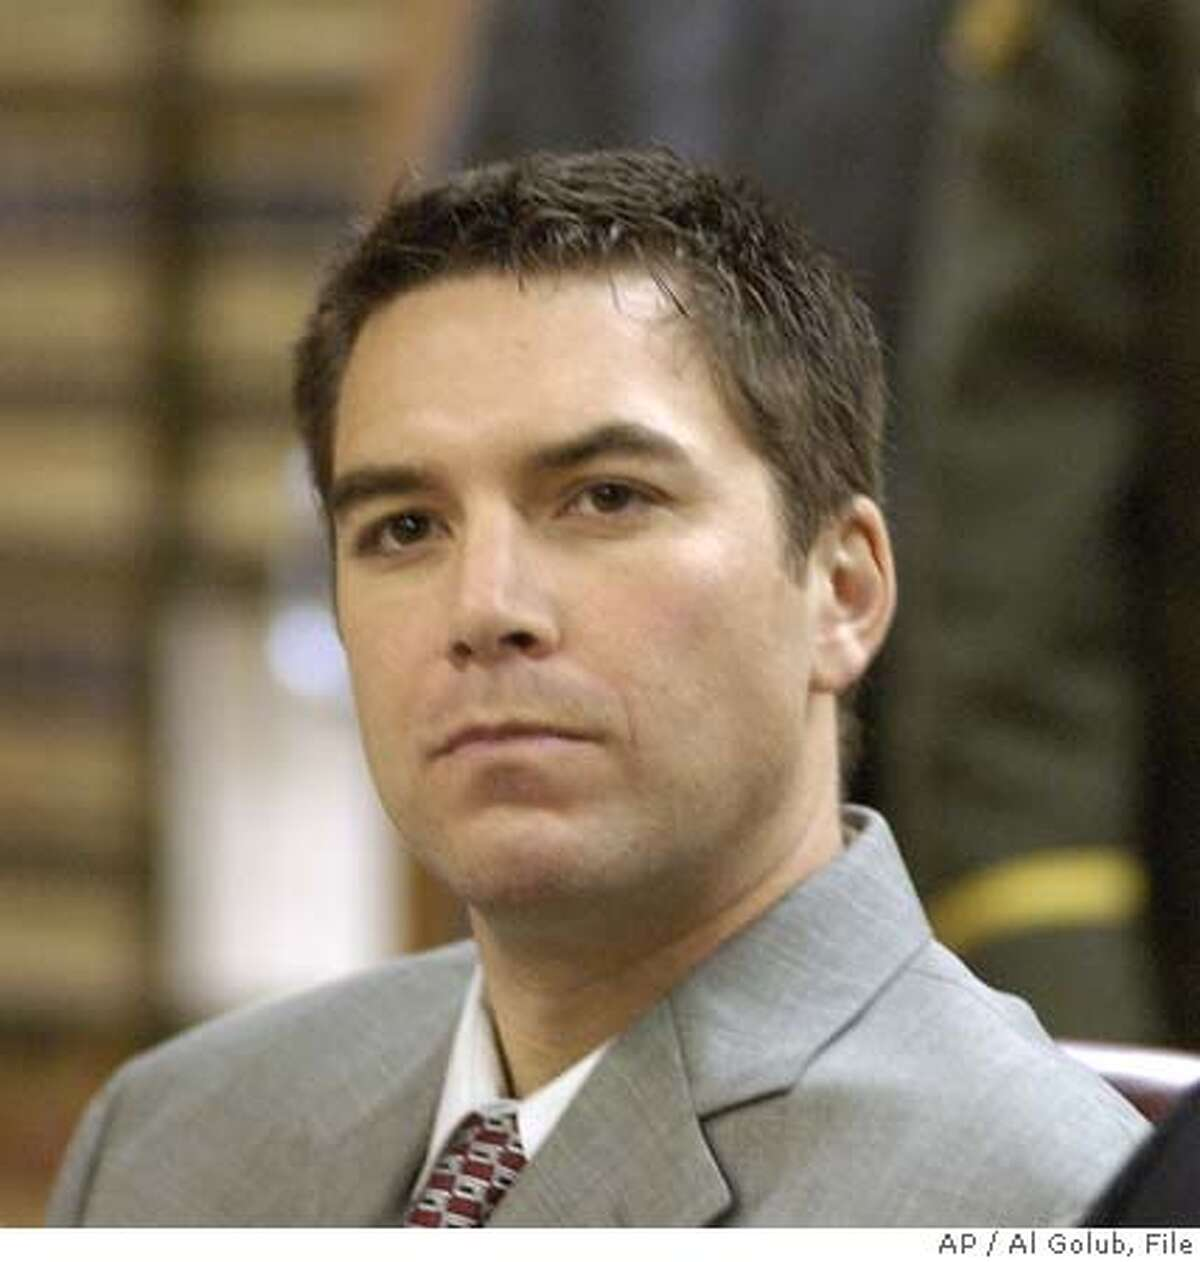 Scott Peterson is shown in a courtroom in Modesto, Calif., Tuesday, Jan. 20, 2004, during a change-of-venue hearing in his trial. The judge in the murder case against Scott Peterson moved the trial about 90 miles away to the San Francisco Bay area Tuesday because of hostility toward Peterson in his dead wife's hometown. (AP Photo/Al Golub, Pool) Scott Peterson will be tried in San Mateo County for the slaying of his wife and unborn son. Laci Peterson ProductNameChronicle POOL IMAGE Scott Peterson Scott Peterson Judge Alfred Delucchi Judge Alfred Delucchi Scott Peterson told police he went fishing at the Berkeley Marina on Dec. 24, 2002. Scott Peterson told police he went fishing at the Berkeley Marina on Dec. 24, 2002. Defendant Scott Peterson stood, smiled and greeted the potential jurors in court. ProductNameChronicle Scott Peterson Scott Peterson is accused of killing his pregnant wife, Laci, and her fetus in late 2002. Scott Peterson is accused of killing his pregnant wife and her fetus in late 2002. Laci Peterson ProductNameChronicle Laci Peterson Scott Peterson is accused of killing his pregnant wife, Laci, and her fetus in late 2002. Scott Peterson is accused of killing his pregnant wife and her fetus in late 2002. ProductNameArticle_Namepeterson02.ART Laci Peterson Laci Peterson Ran on: 06-23-2004 Scott Peterson Ran on: 06-23-2004 Scott Peterson Ran on: 09-02-2004 Marbled murrelet Ran on: 09-02-2004 Marbled murrelet Metro#Metro#Chronicle#2/5/2004#ALL#3star#A27#0421577391